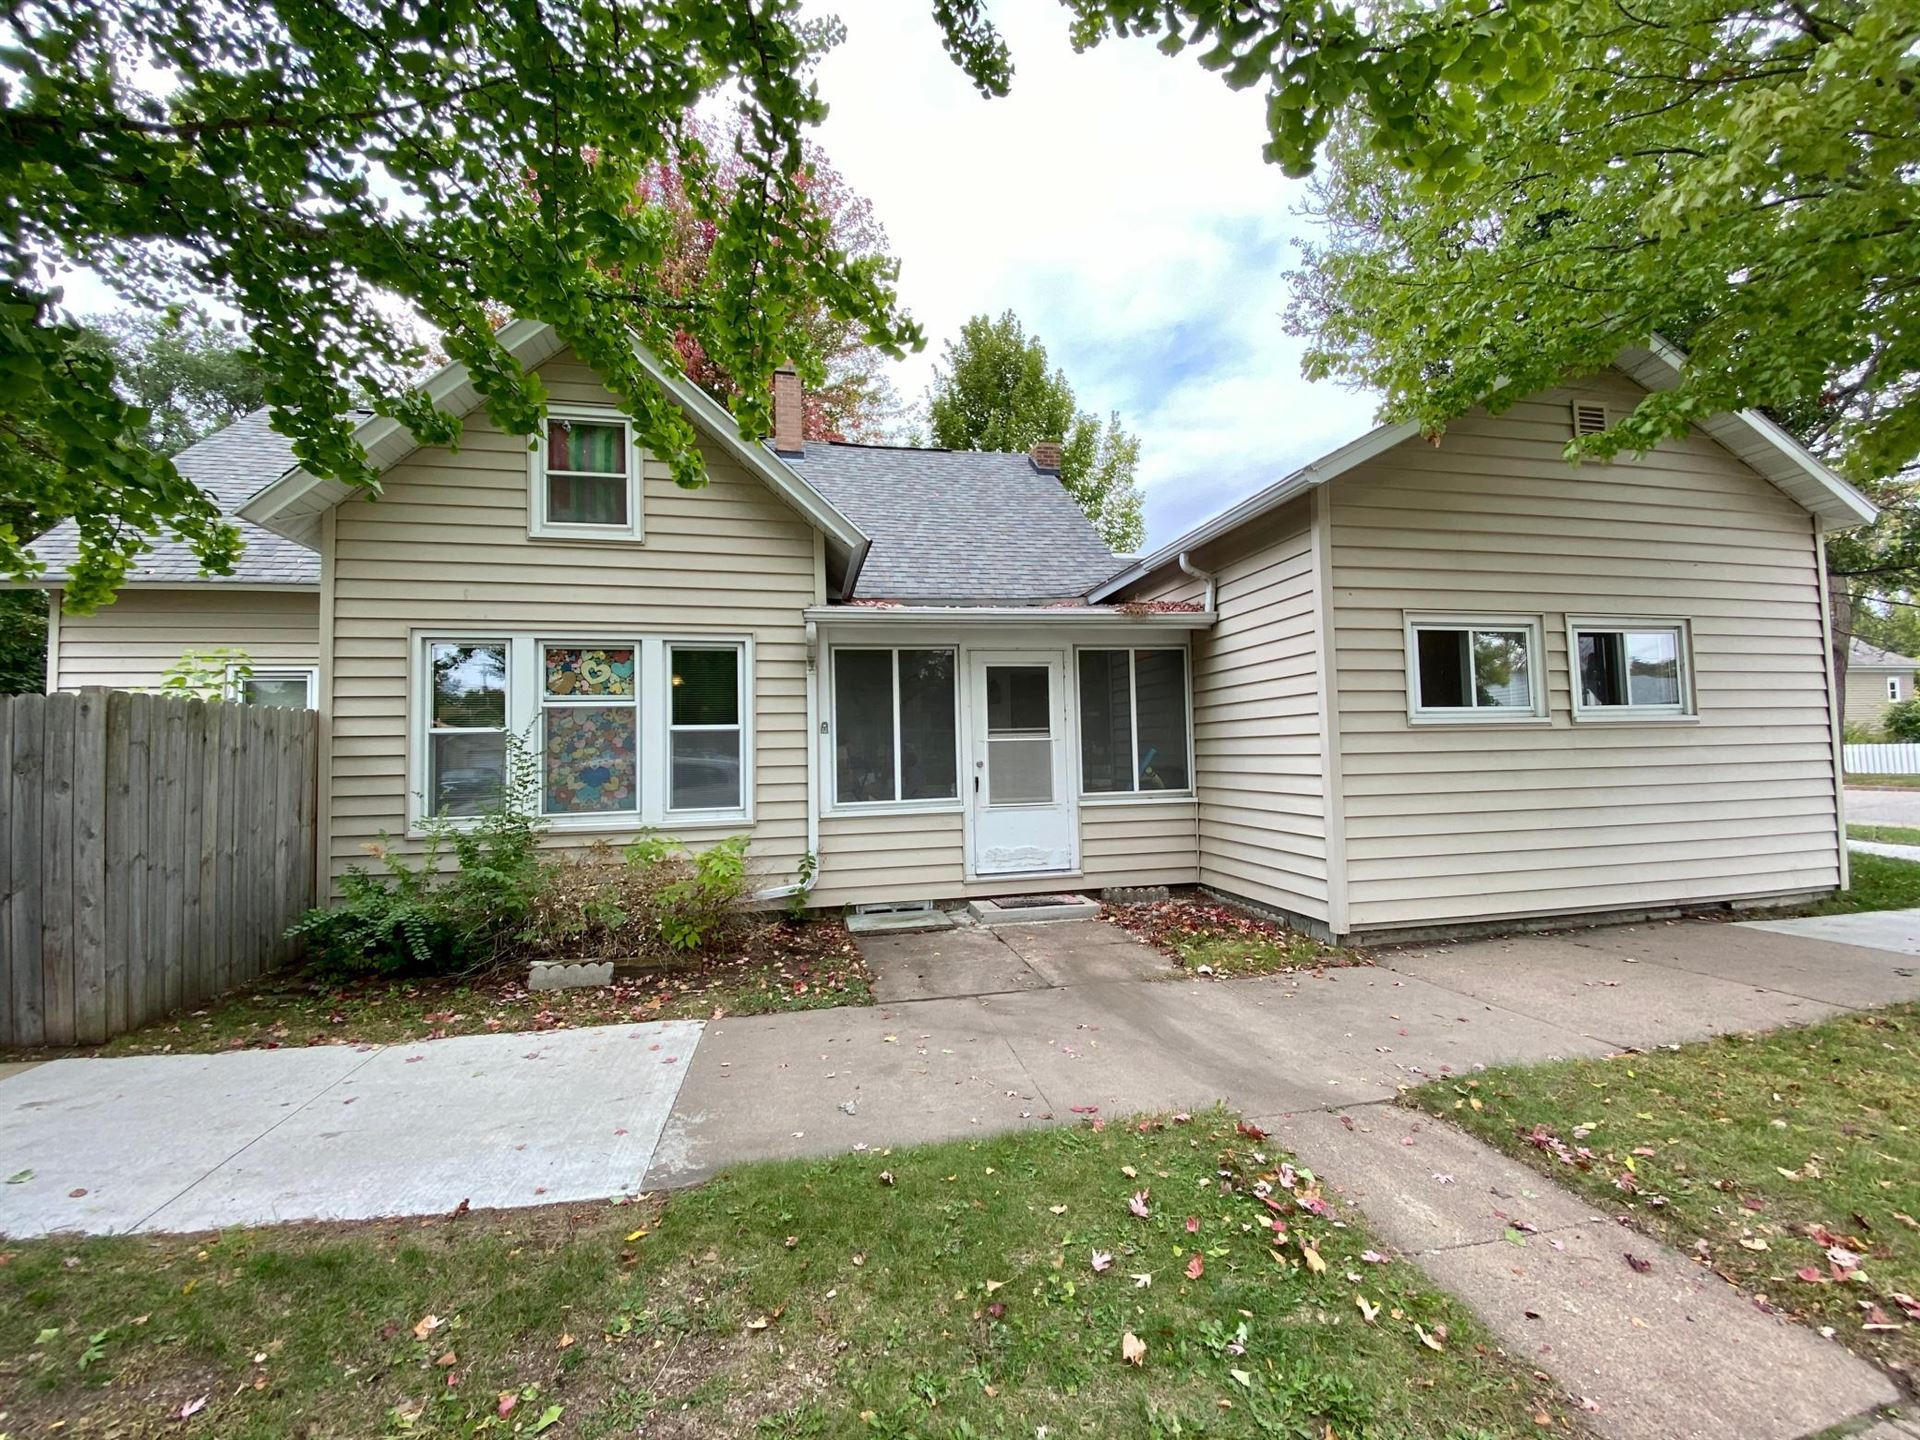 529 E Howard Street, Winona, MN 55987 - MLS#: 5672419